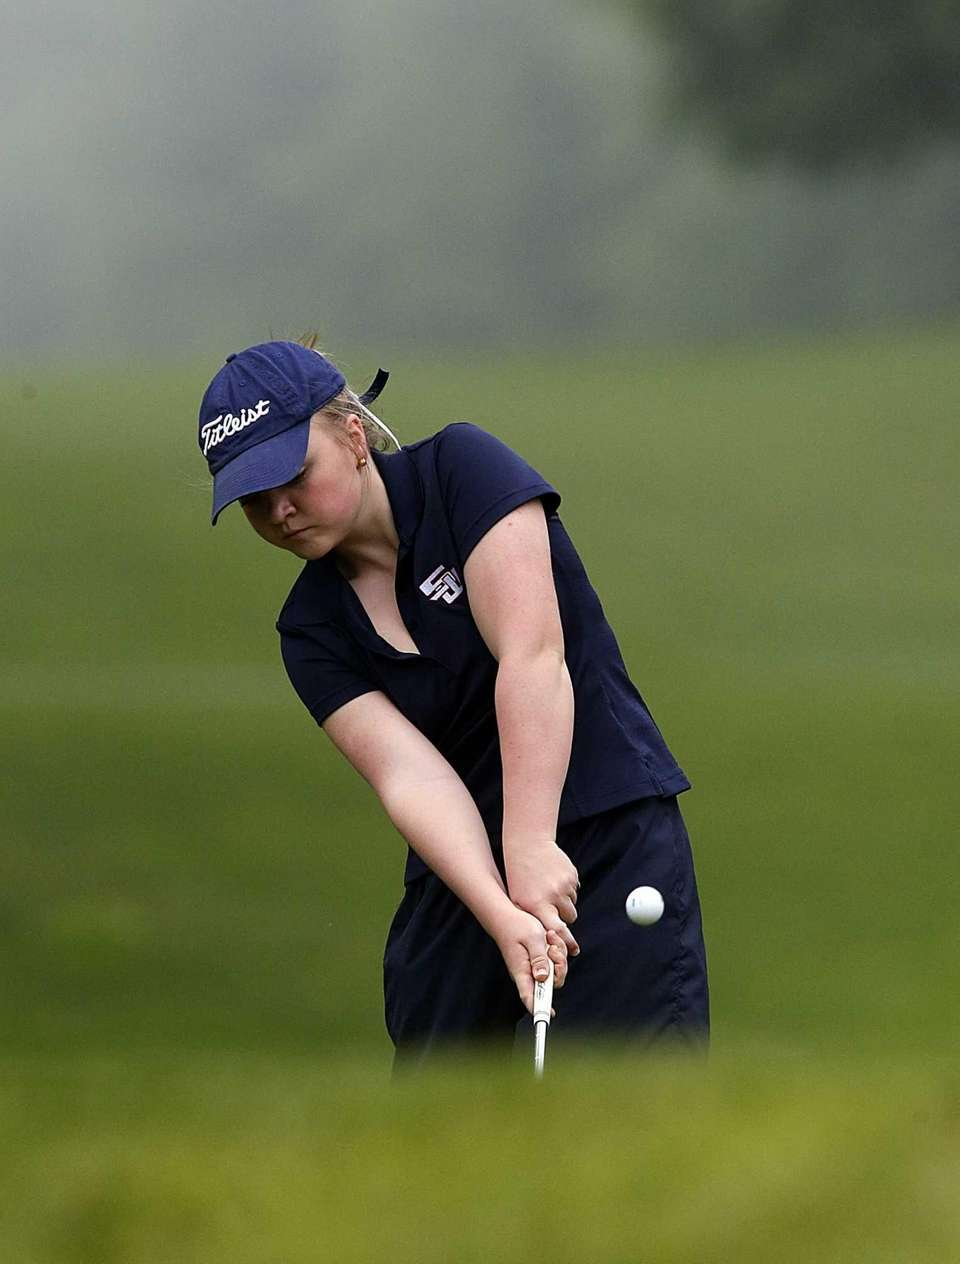 Smithtown West's Emily Doveala chips from the rough